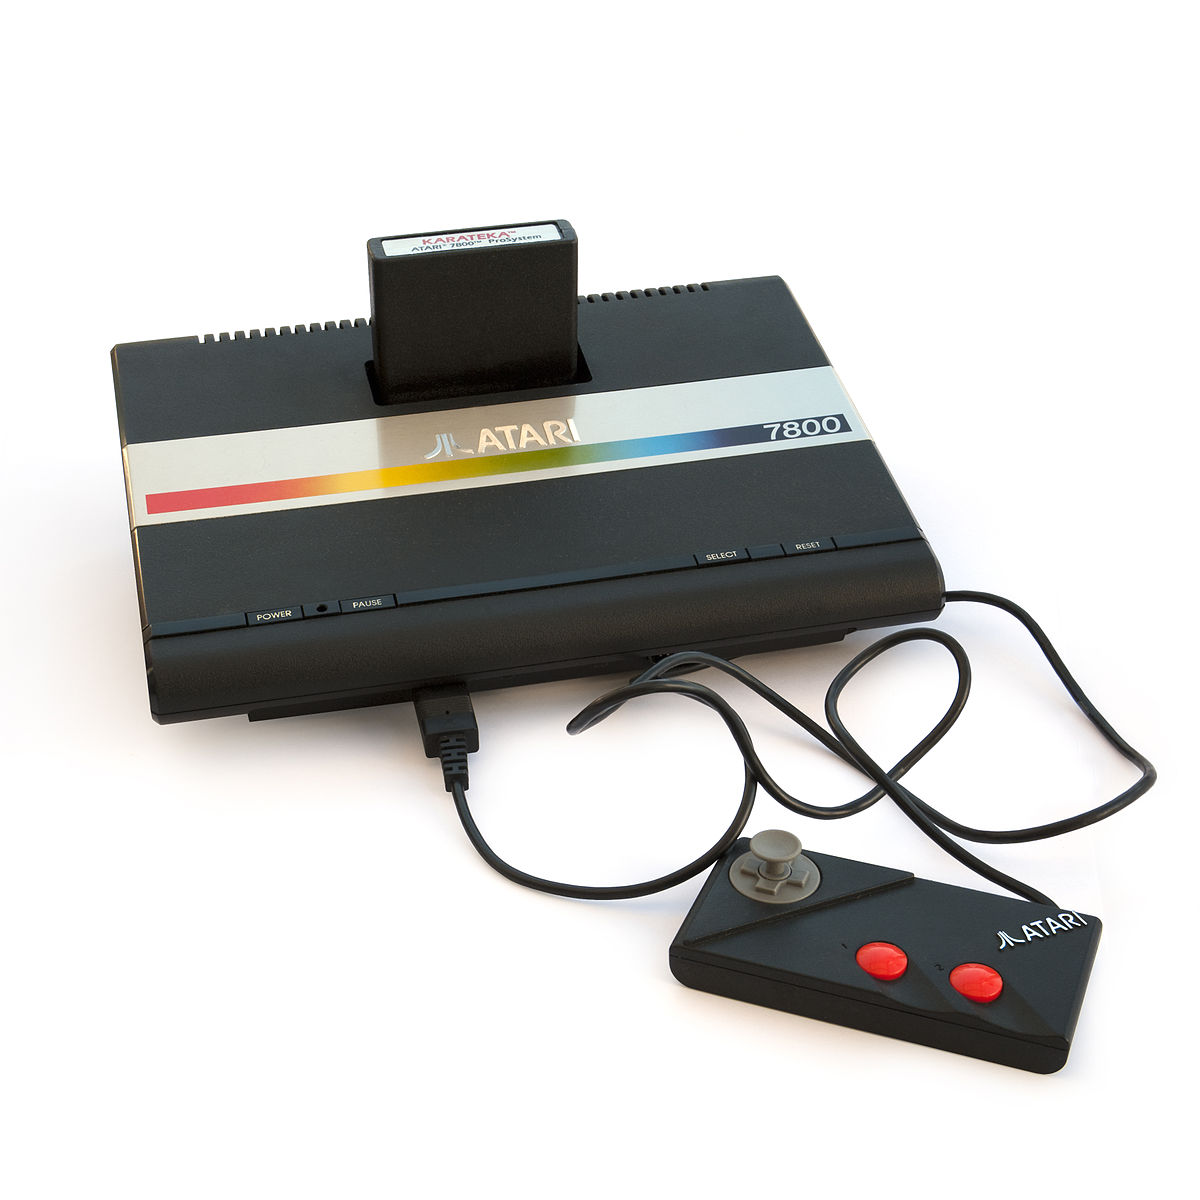 1200px-Atari_7800_with_cartridge_and_controller.jpg